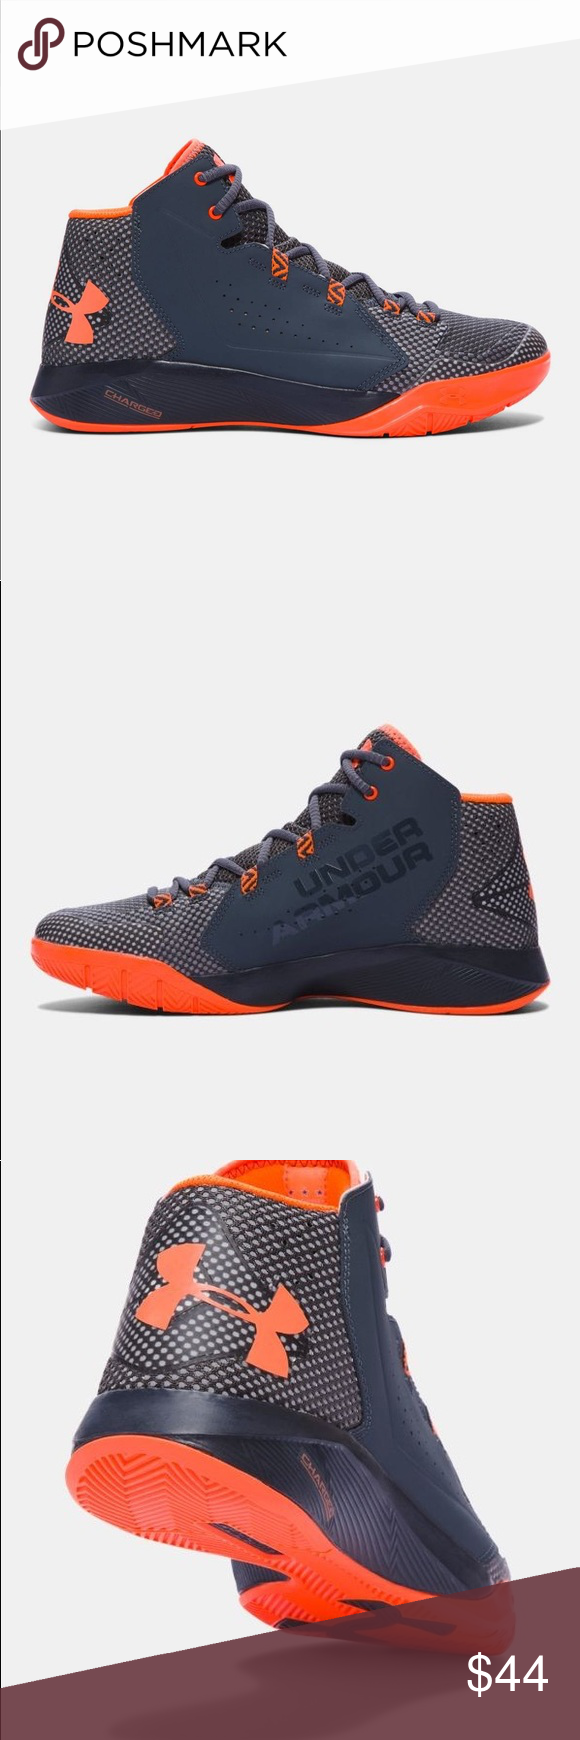 1c4c012db0d5 Under Armour UA BPS Torch Fade BB Orange Size 11k. UA Torch Fade Stealth  Gray   Magma Orange •Lightweight leather upper with molded foam heel and  forefoot ...